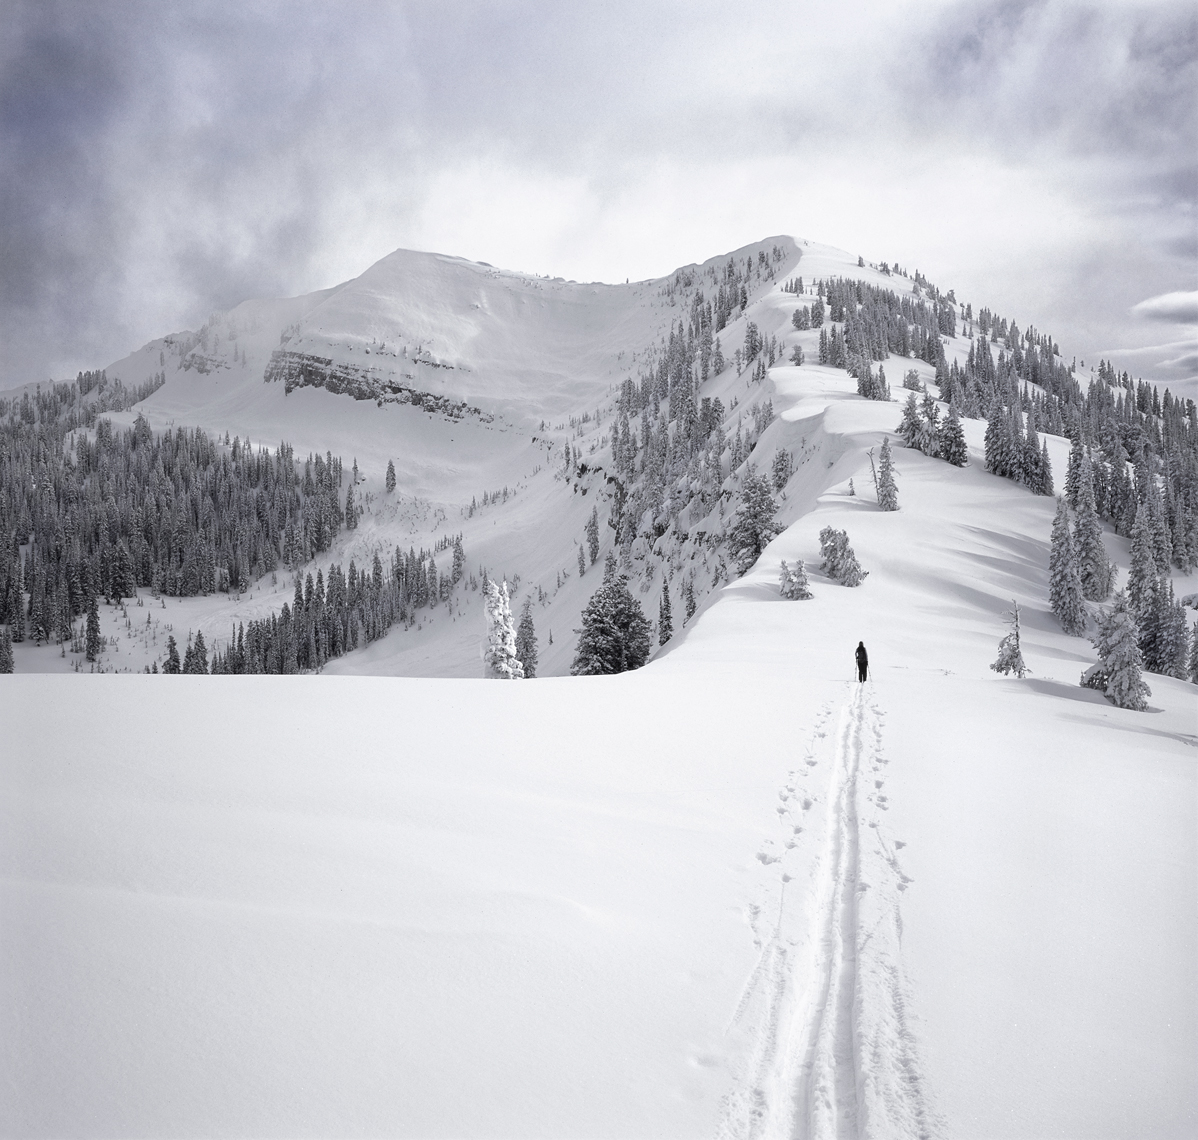 Jon Wyatt Photography - ski touring near Yellowstone